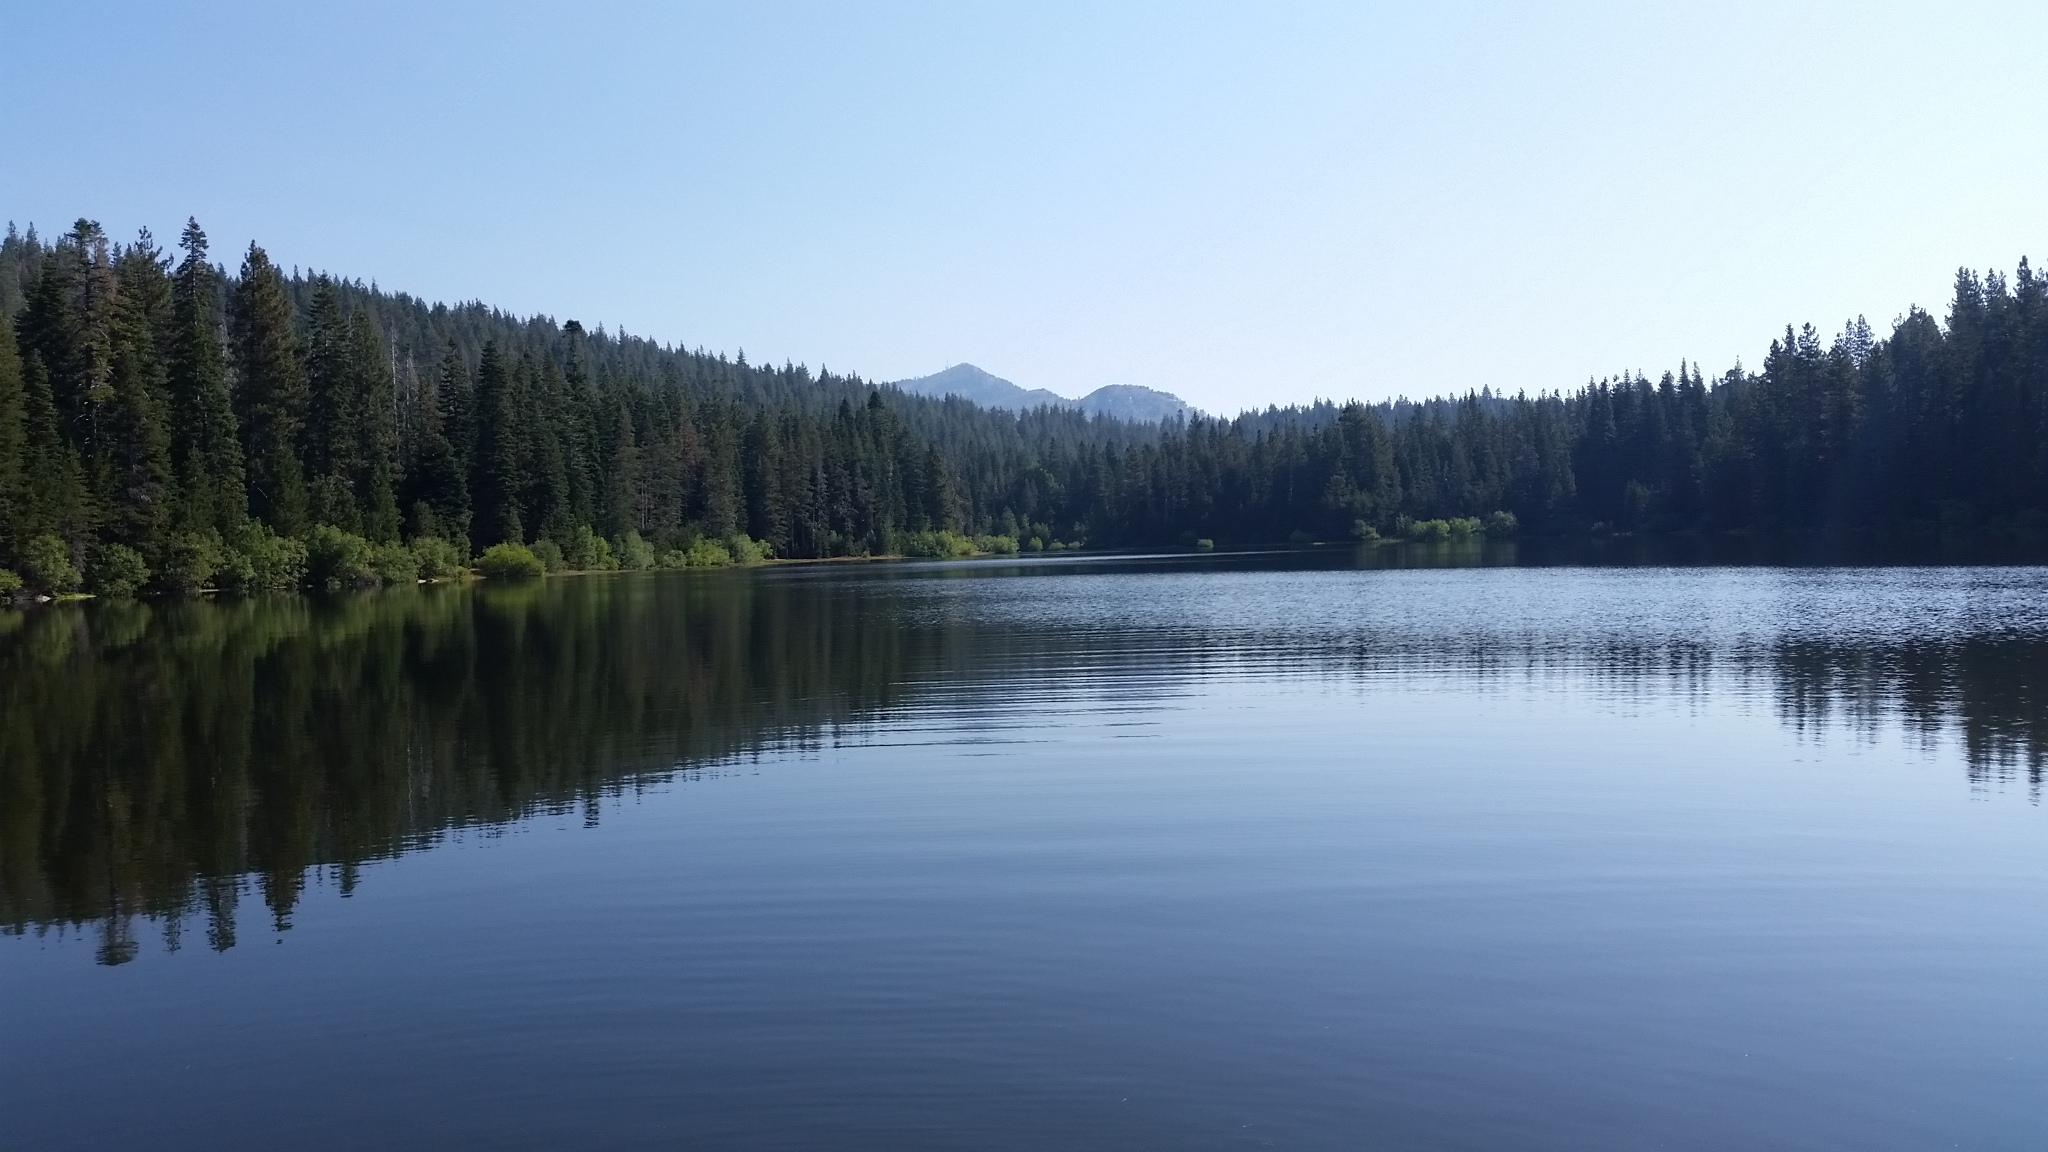 2017-09-05 TT Lake at Snowflower Emigrant Gap CA